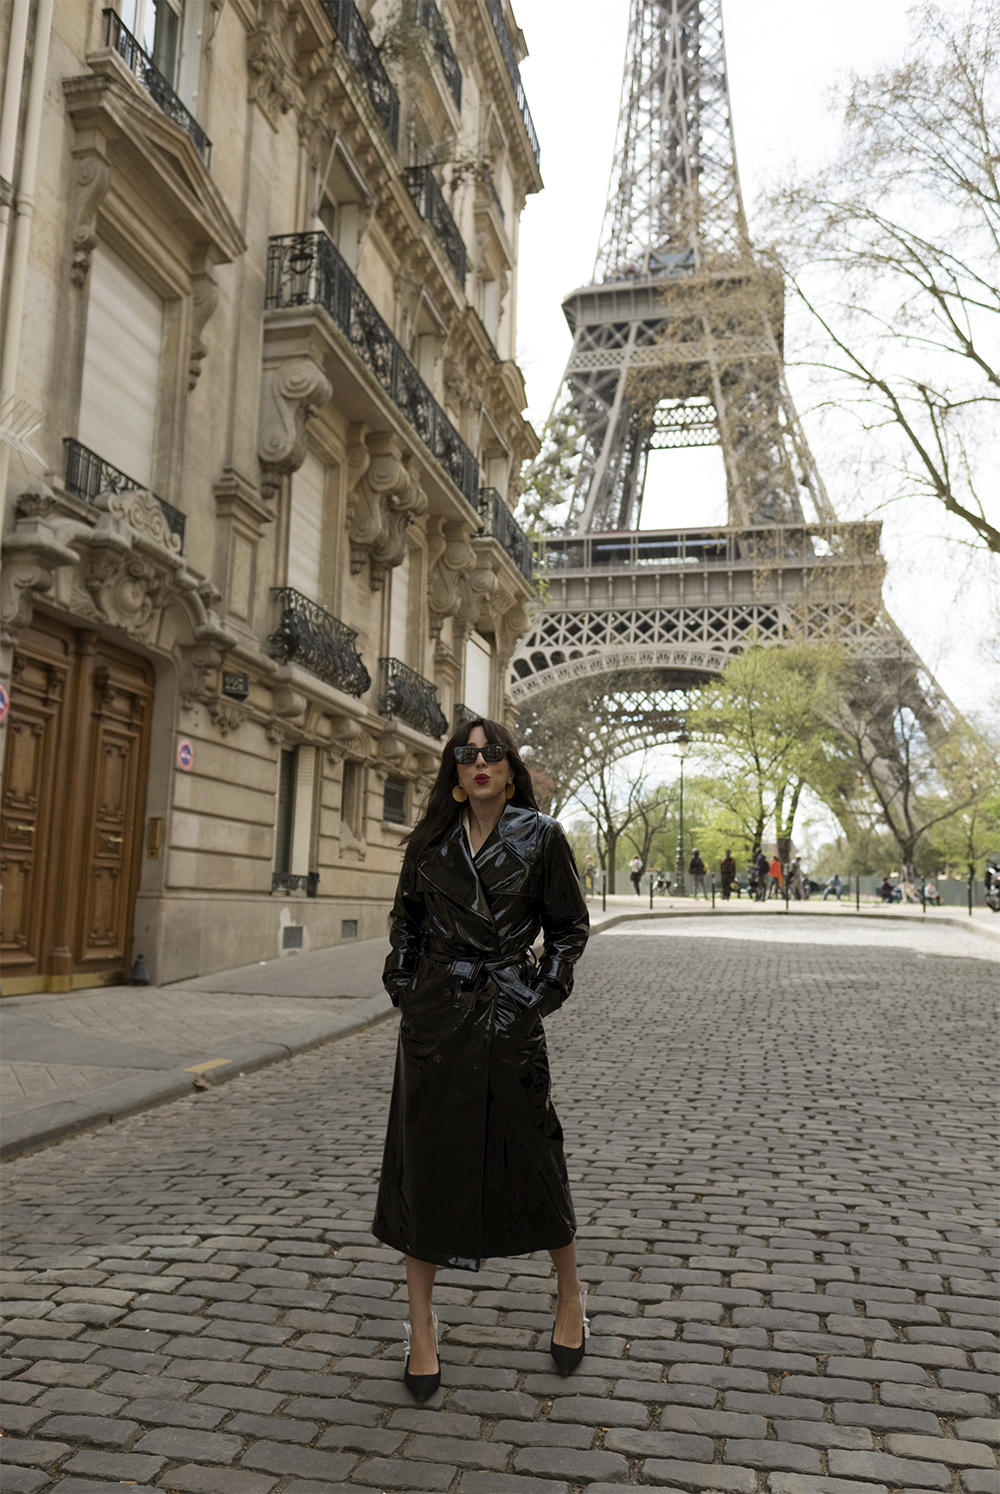 sania claus demina paris april 2018 patent trench coat by malene birger dior canvas slingback shoes carrera sunglasses dior addict lips rue universite_1